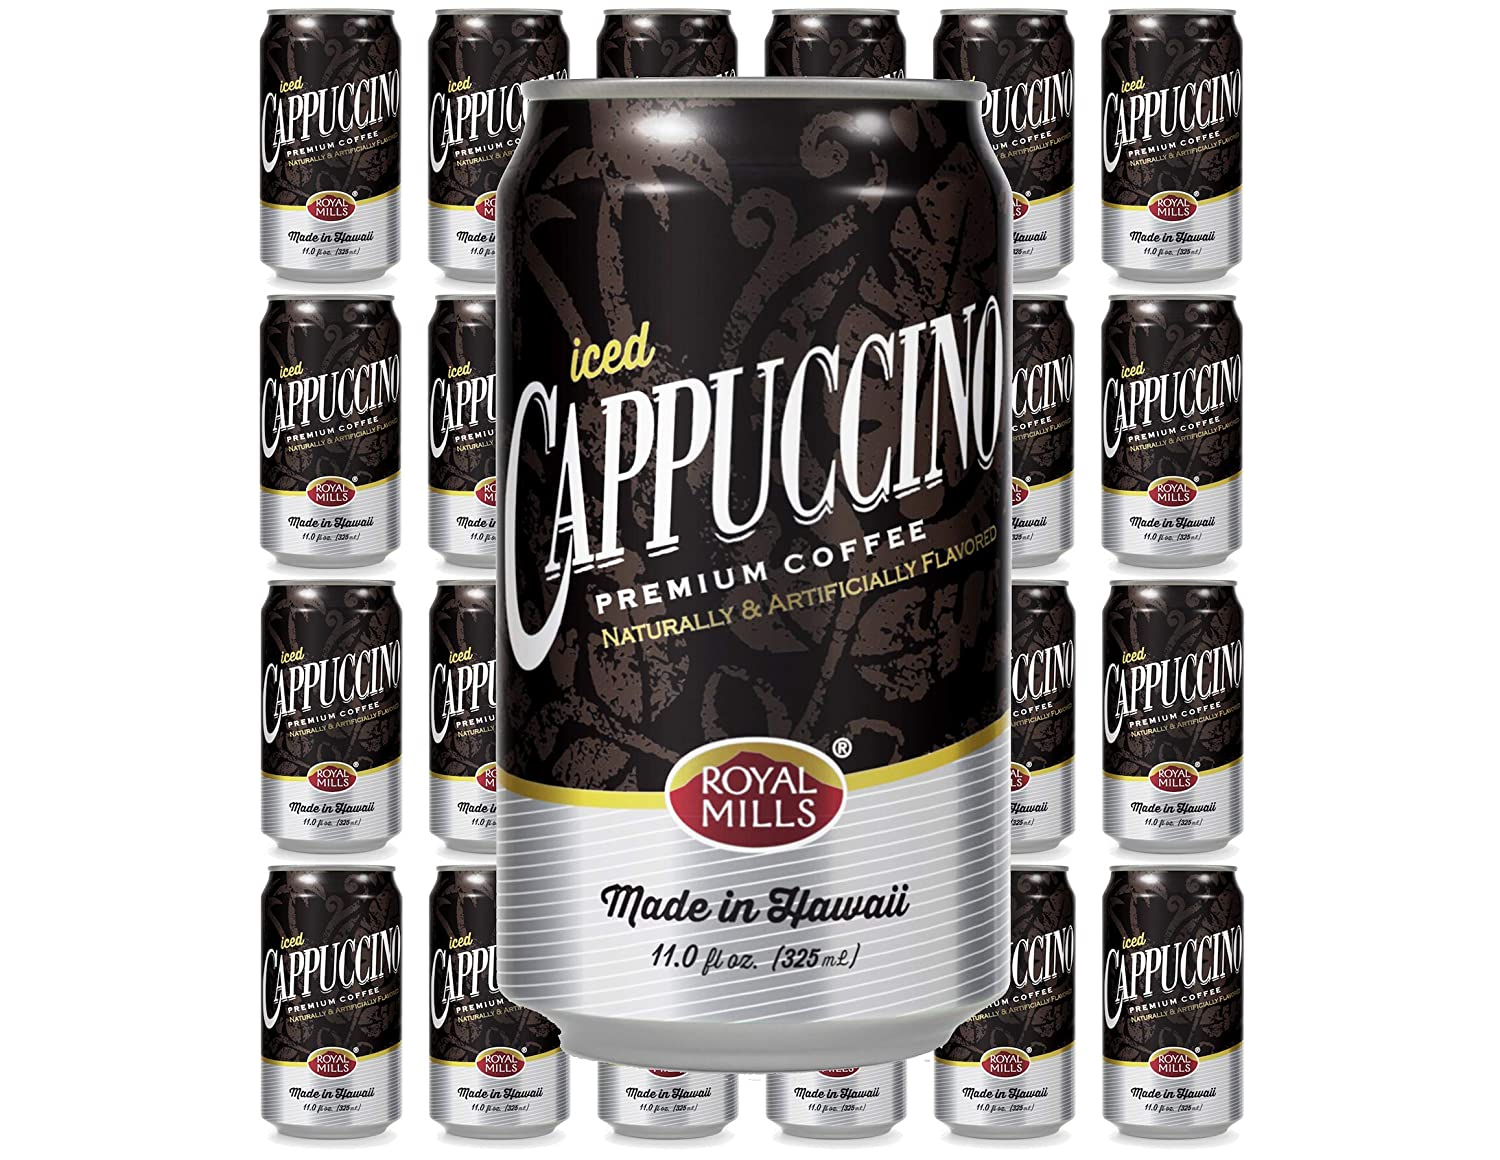 Royal Mills Iced Cappuccino, Premium Coffee, Made in Hawaii, 11 Fl Oz | 24 Pack